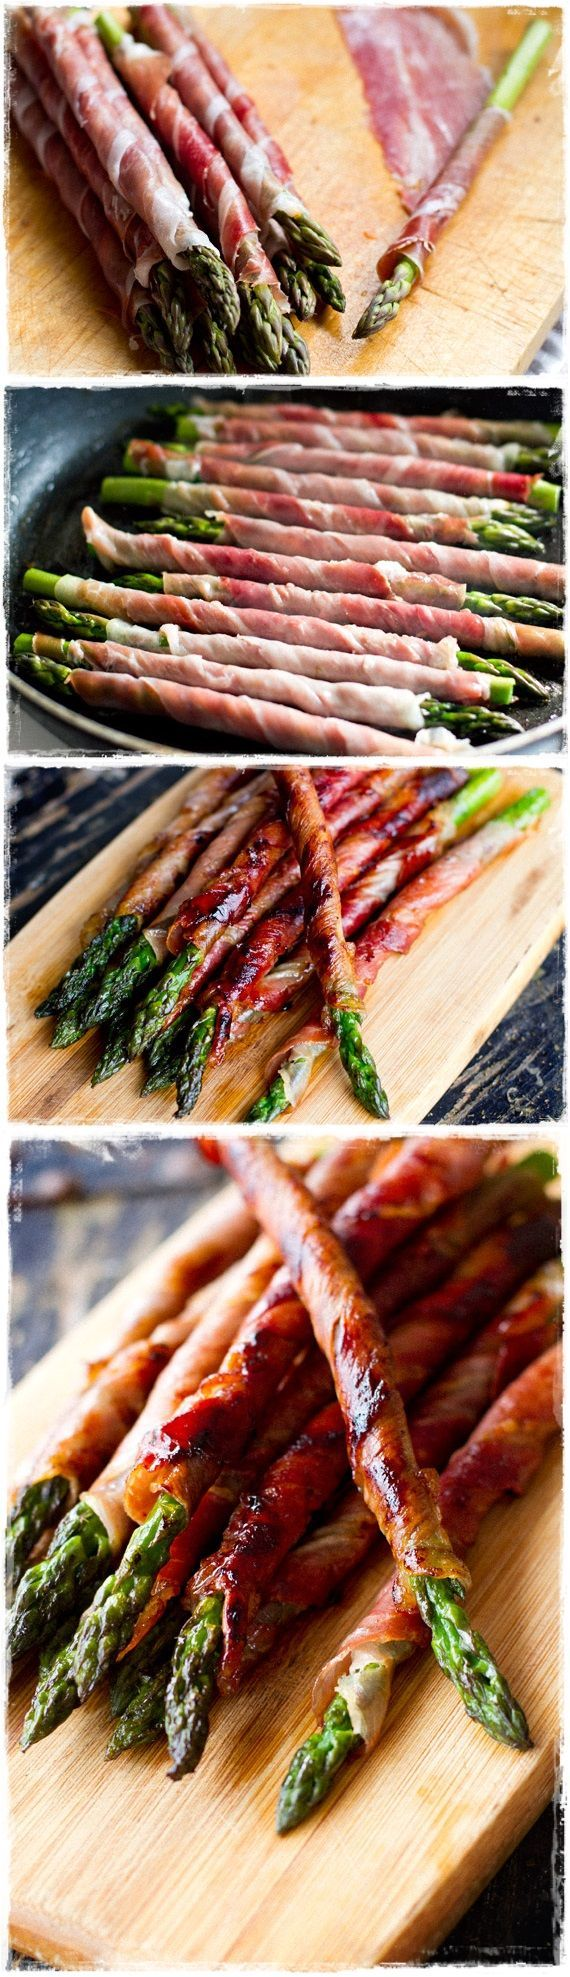 Prosciutto Wrapped Asparagus - Cook Blog